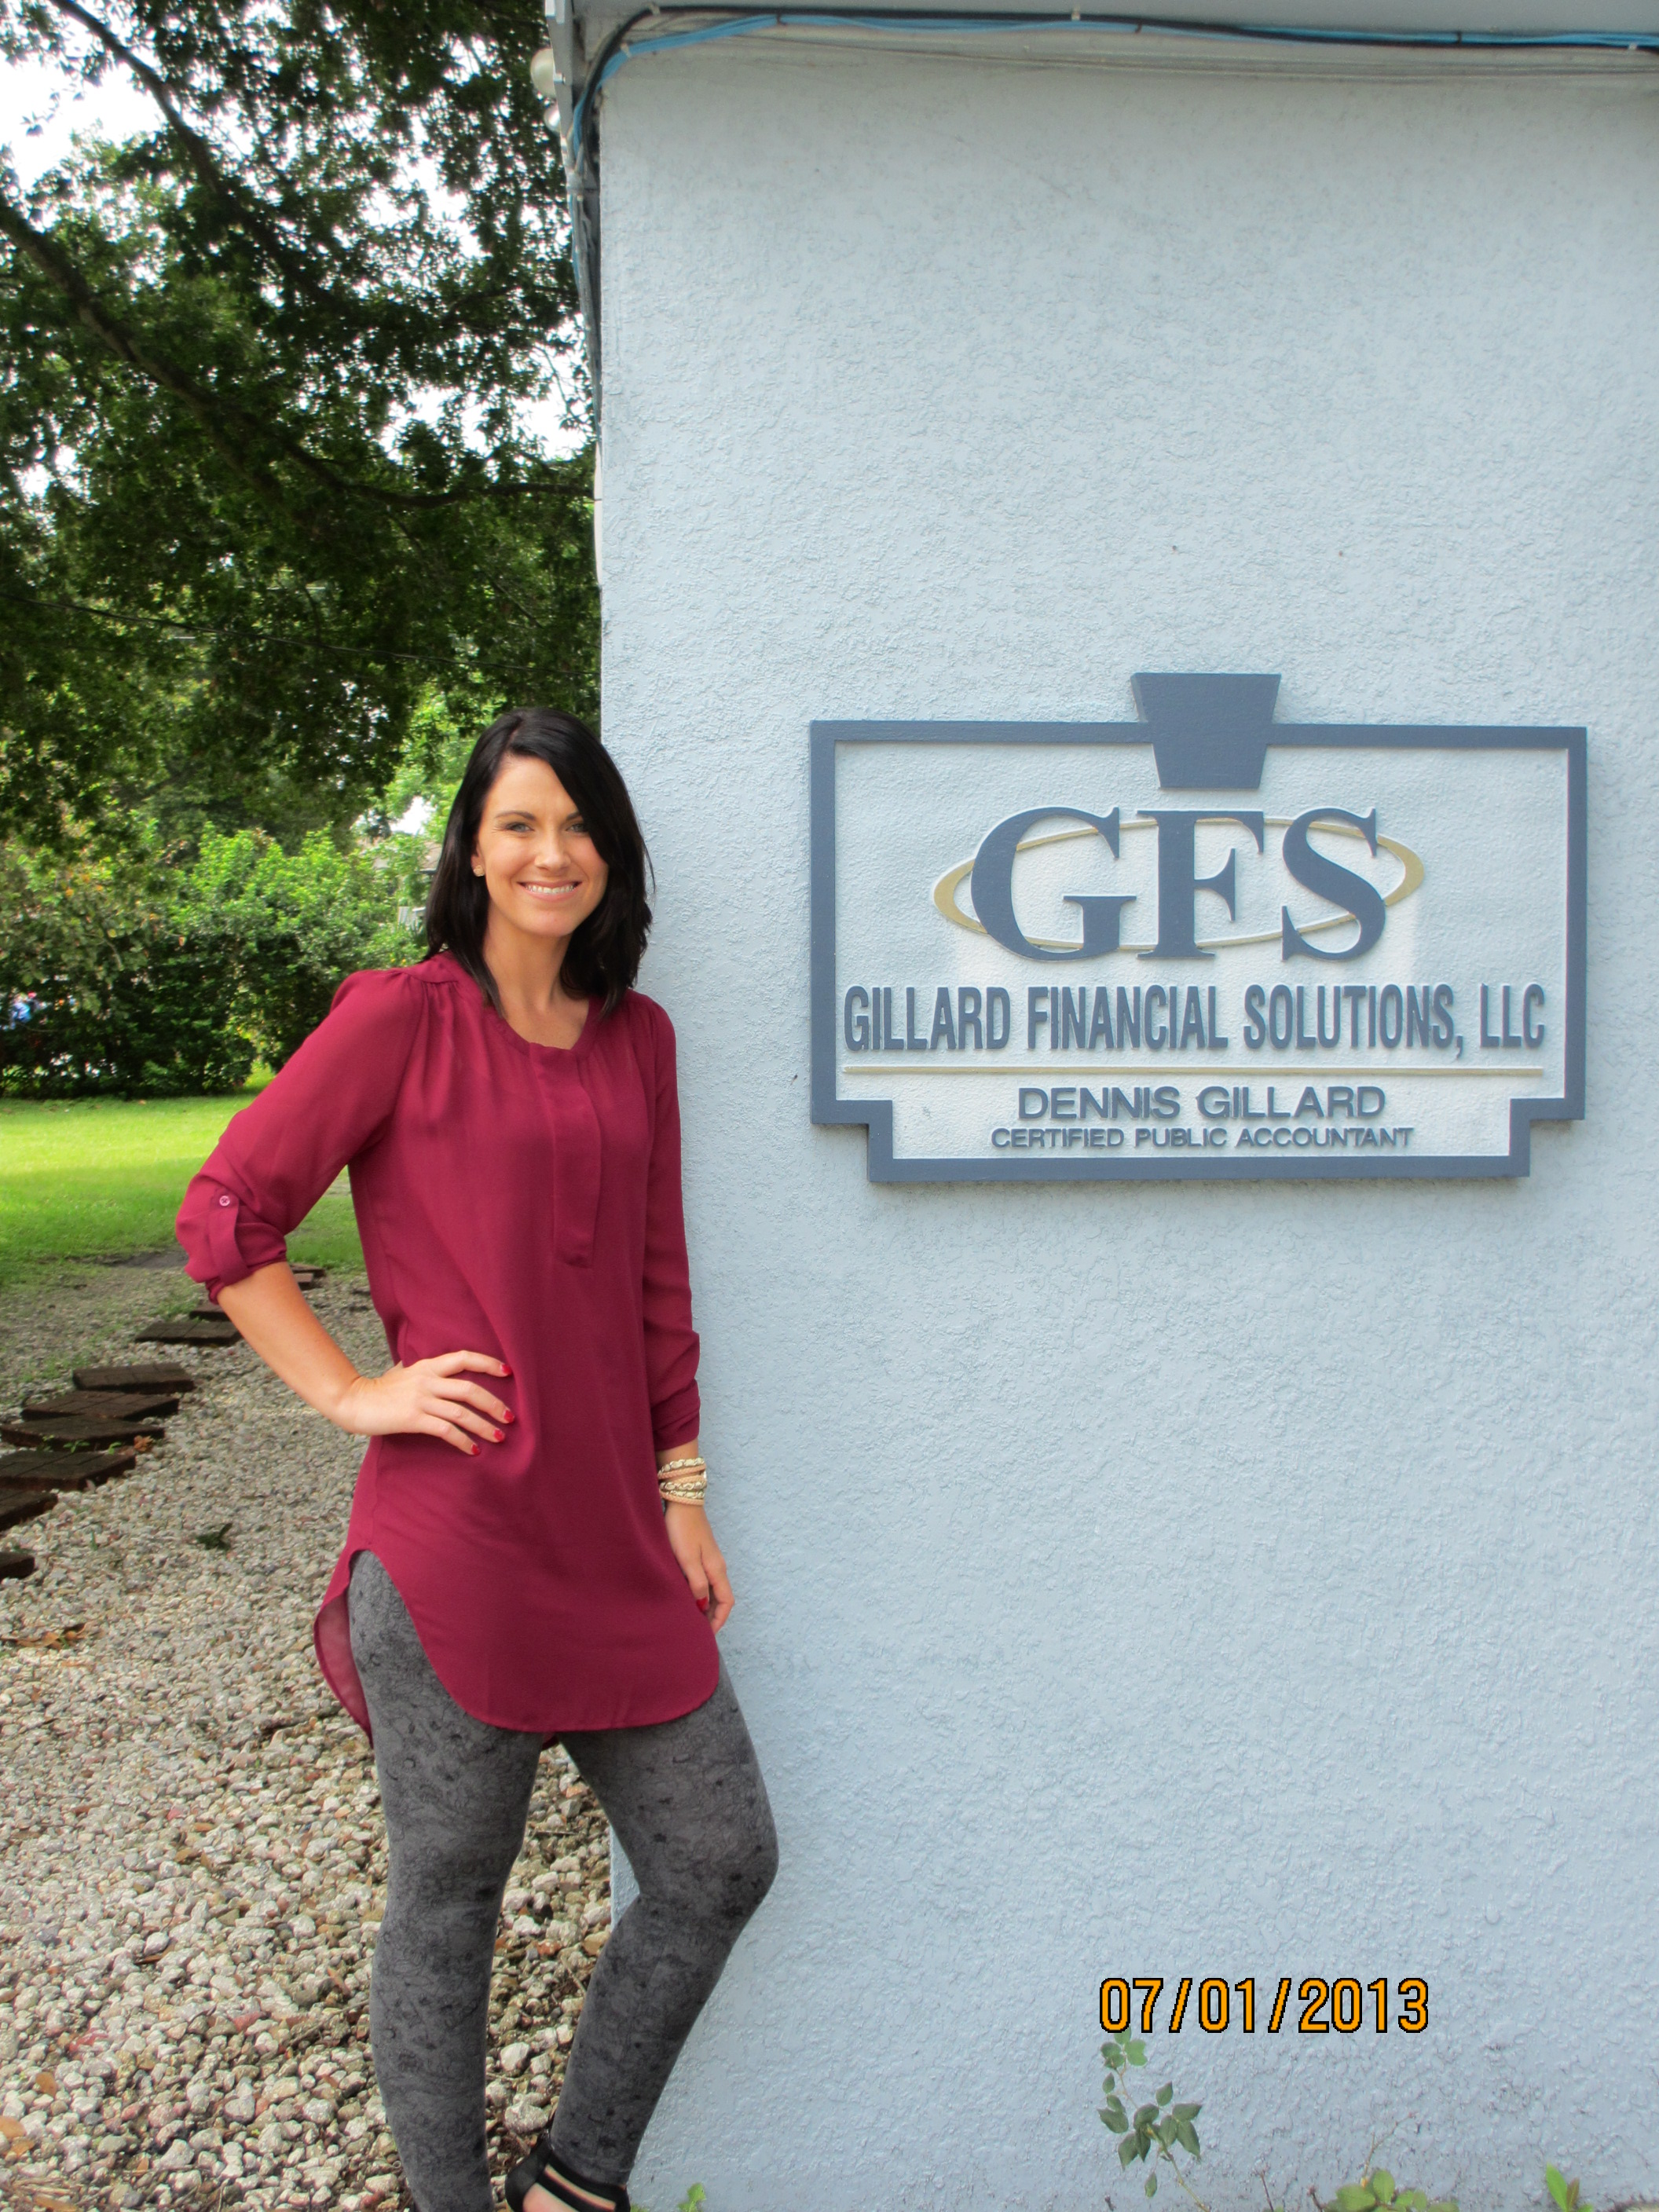 winter garden fl cpa gillard financial solutions llc